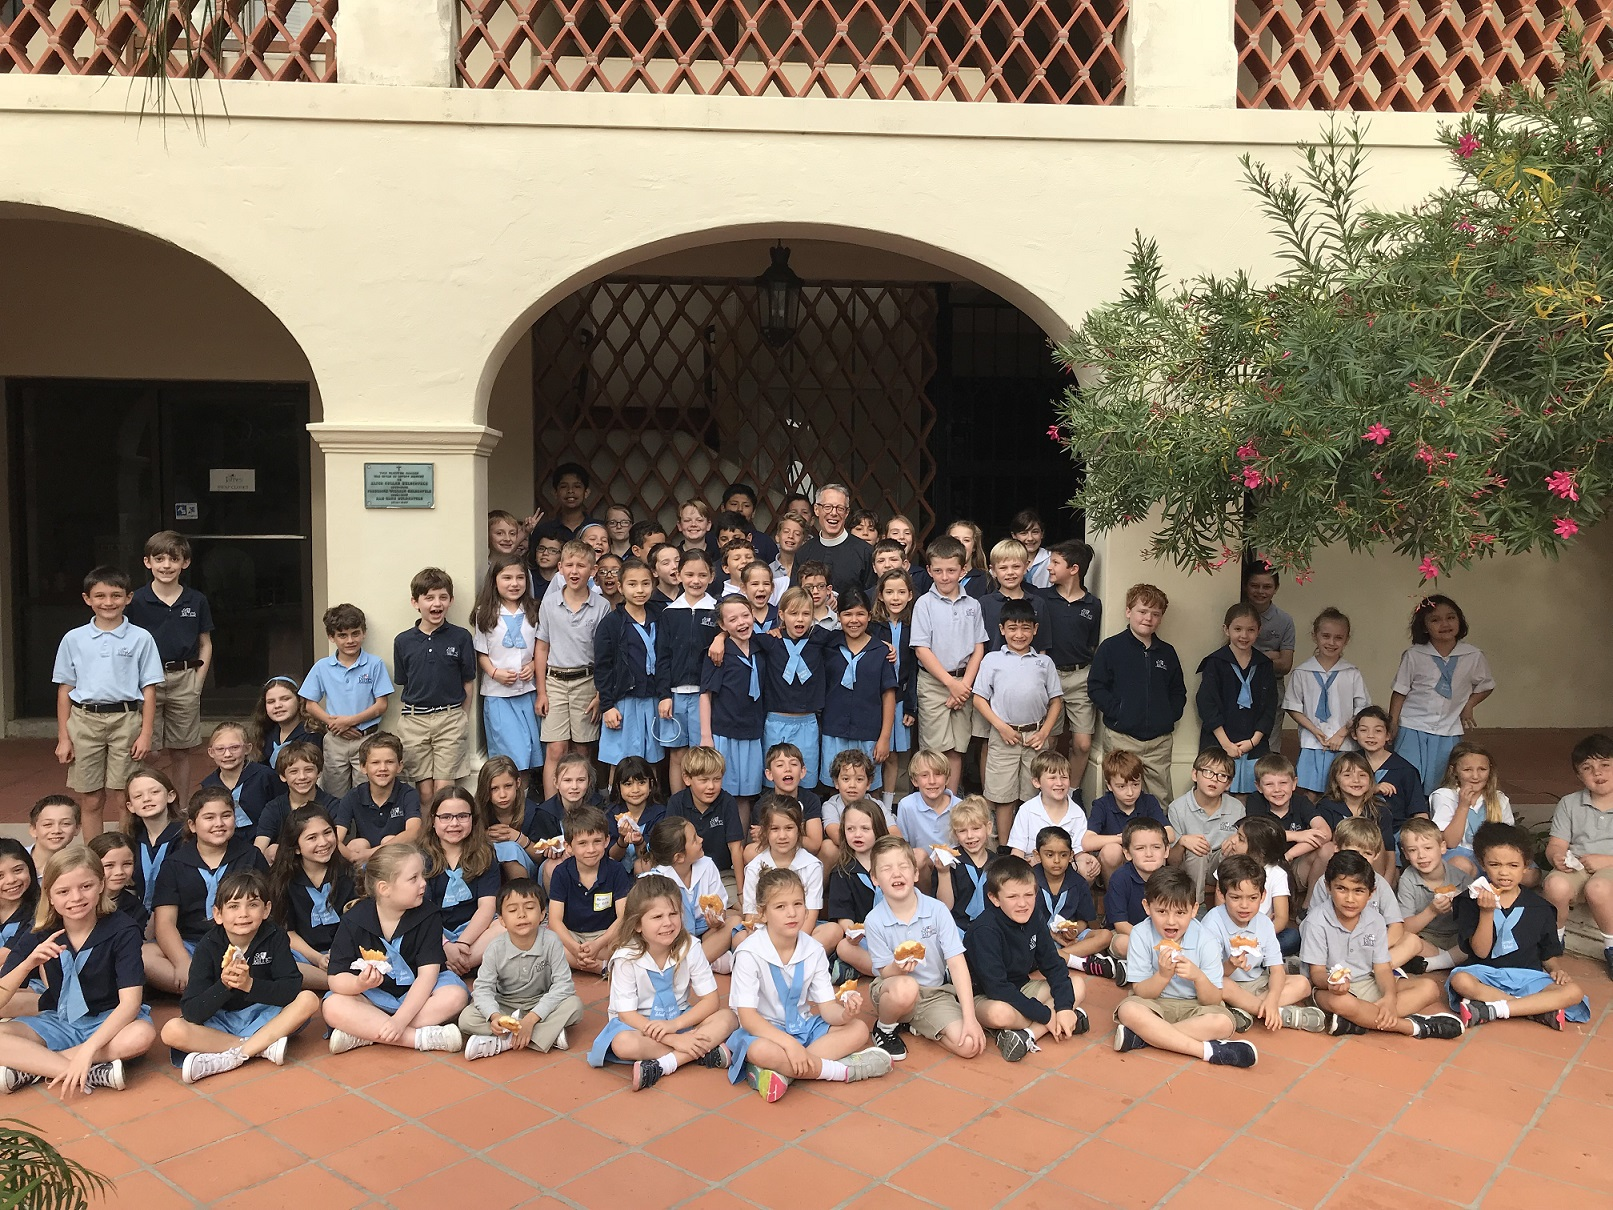 Lower school group photo of kids in courtyard